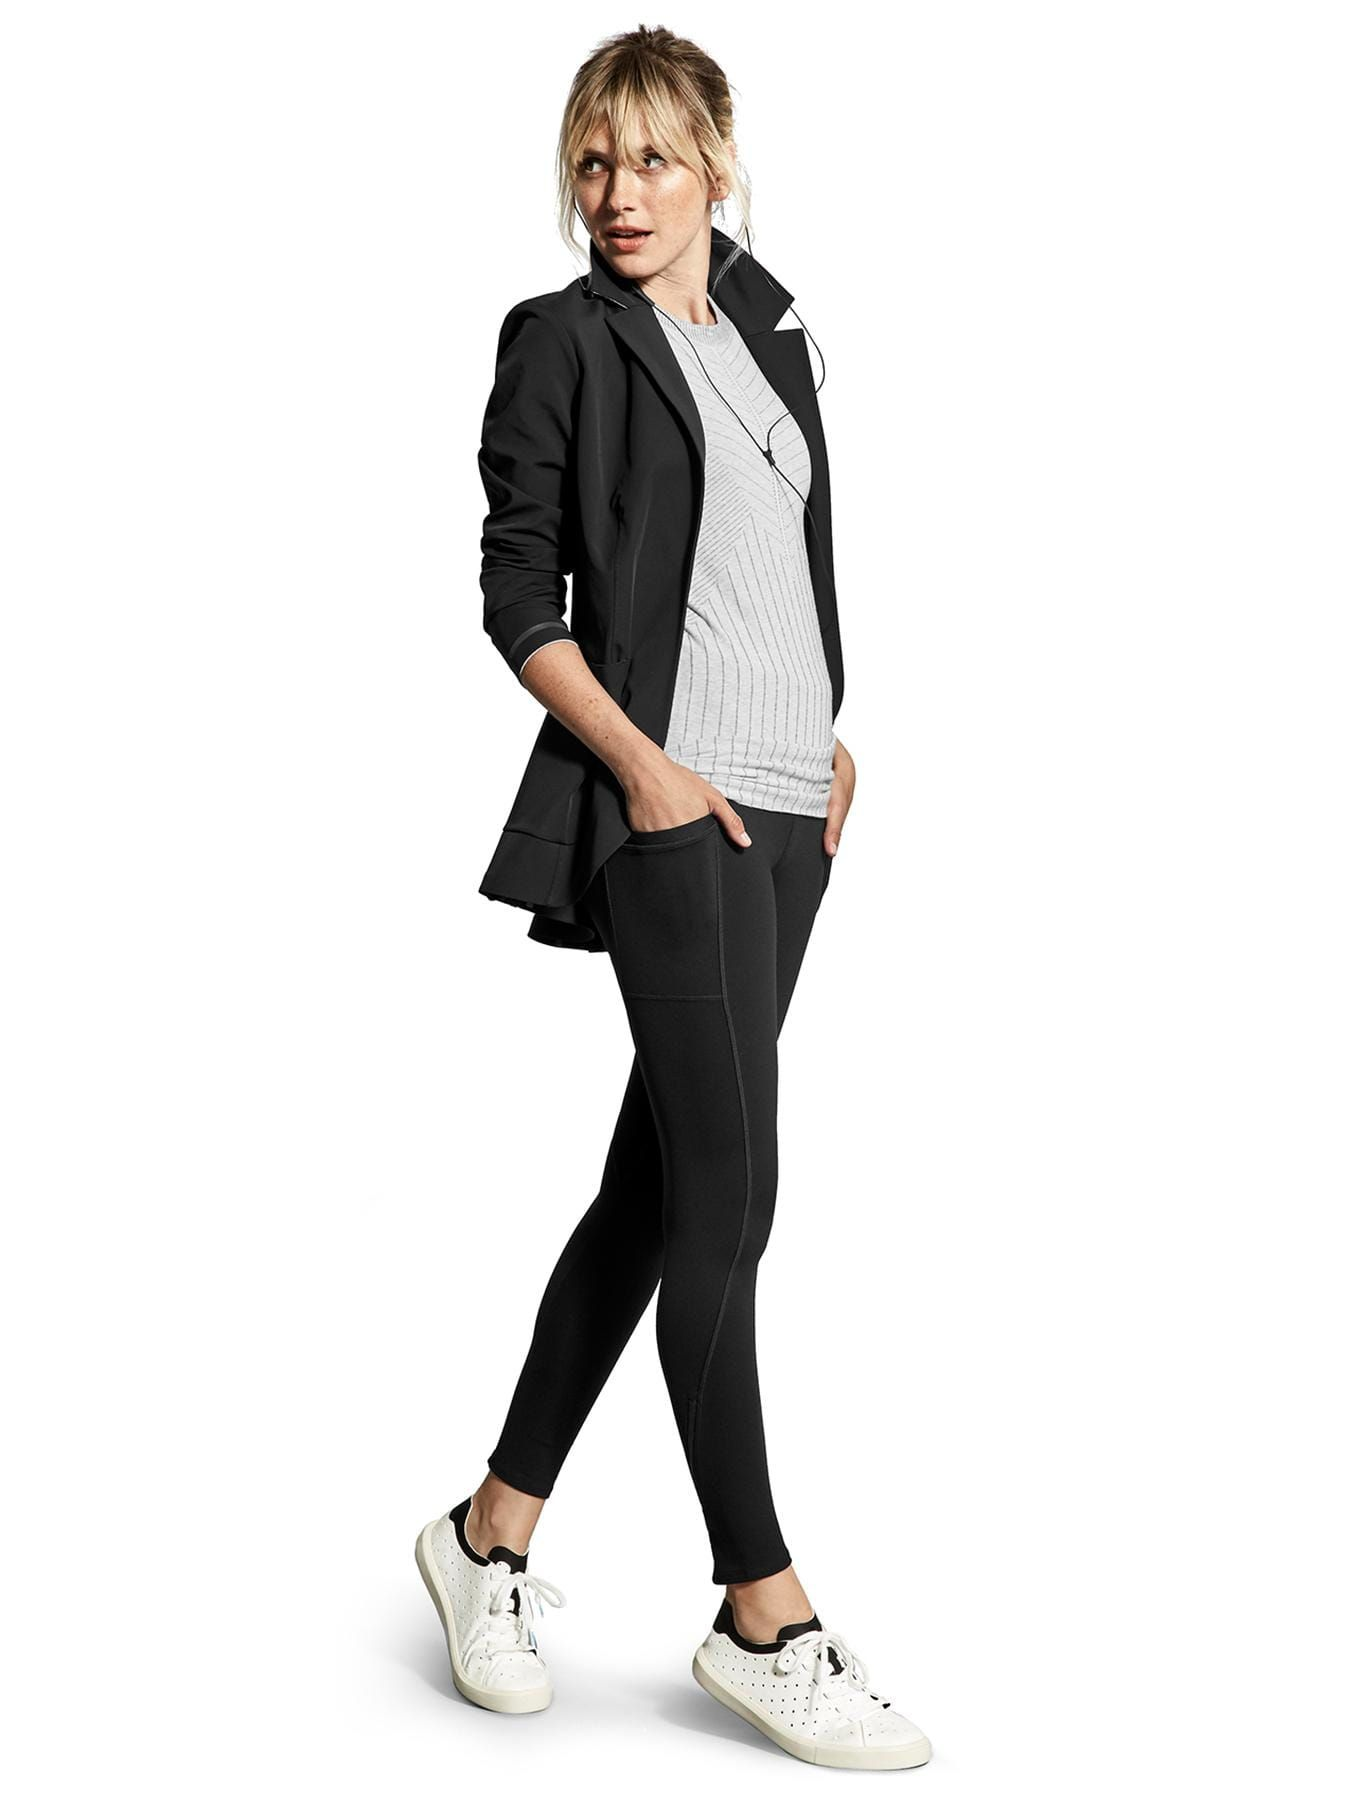 d9f3620990c Urban Commute blazer by Athleta